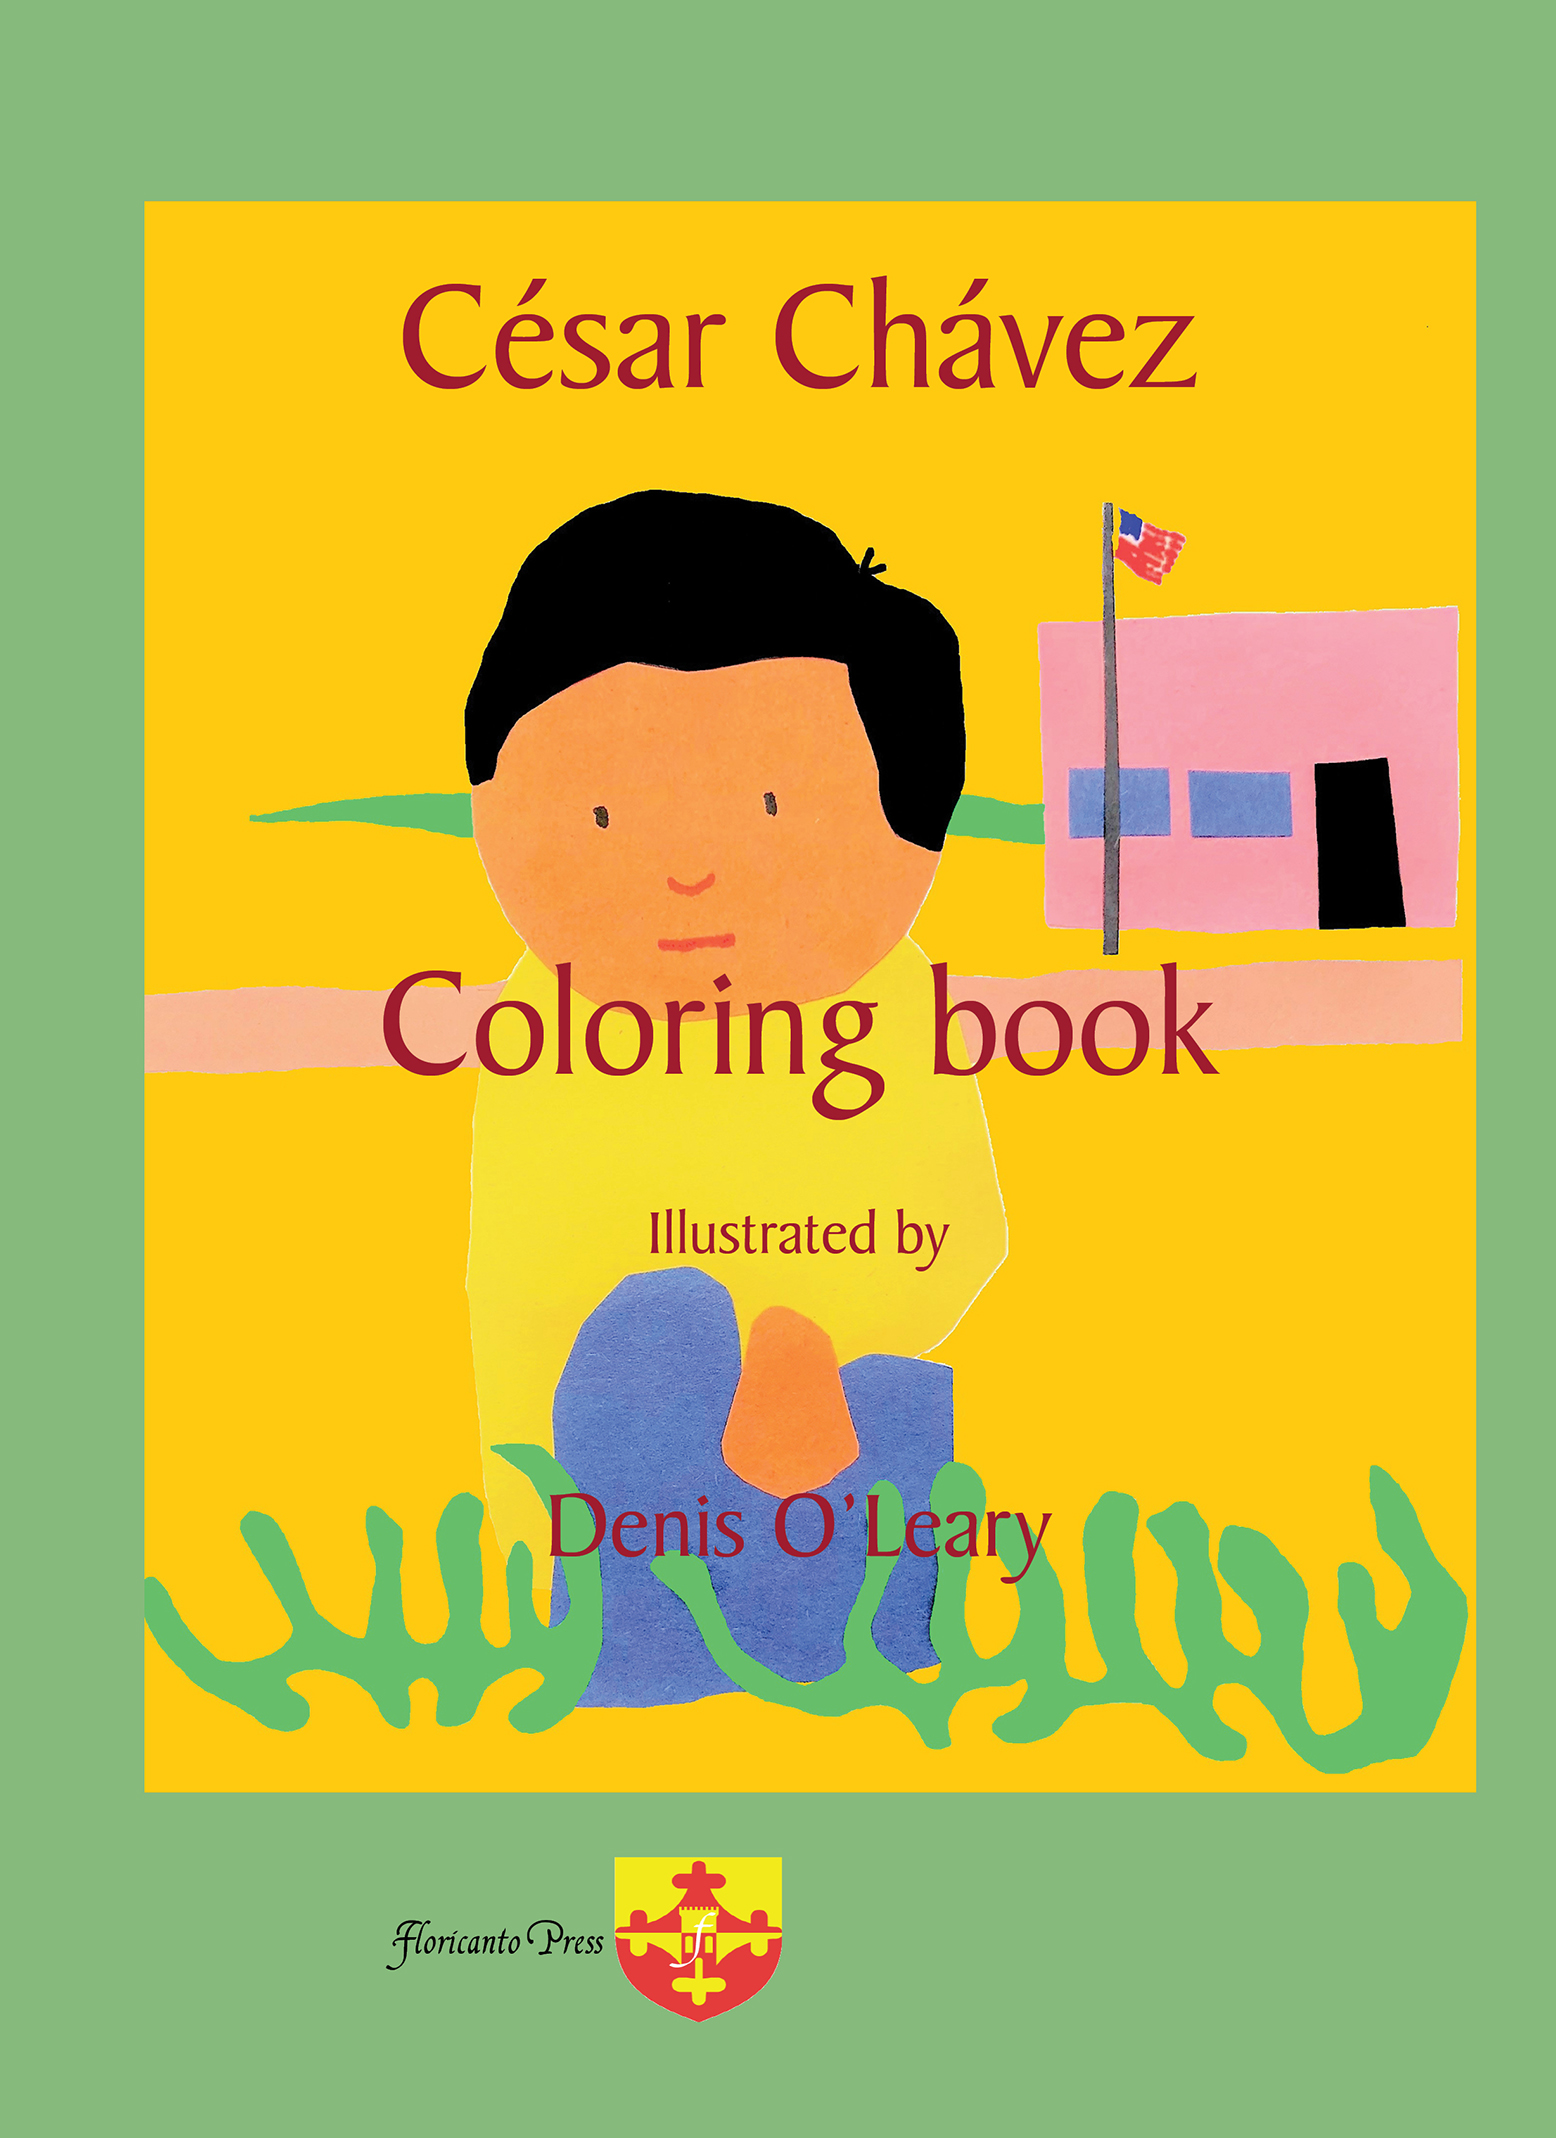 César Chávez Coloring book. Illustrated by  Denis O'Leary.